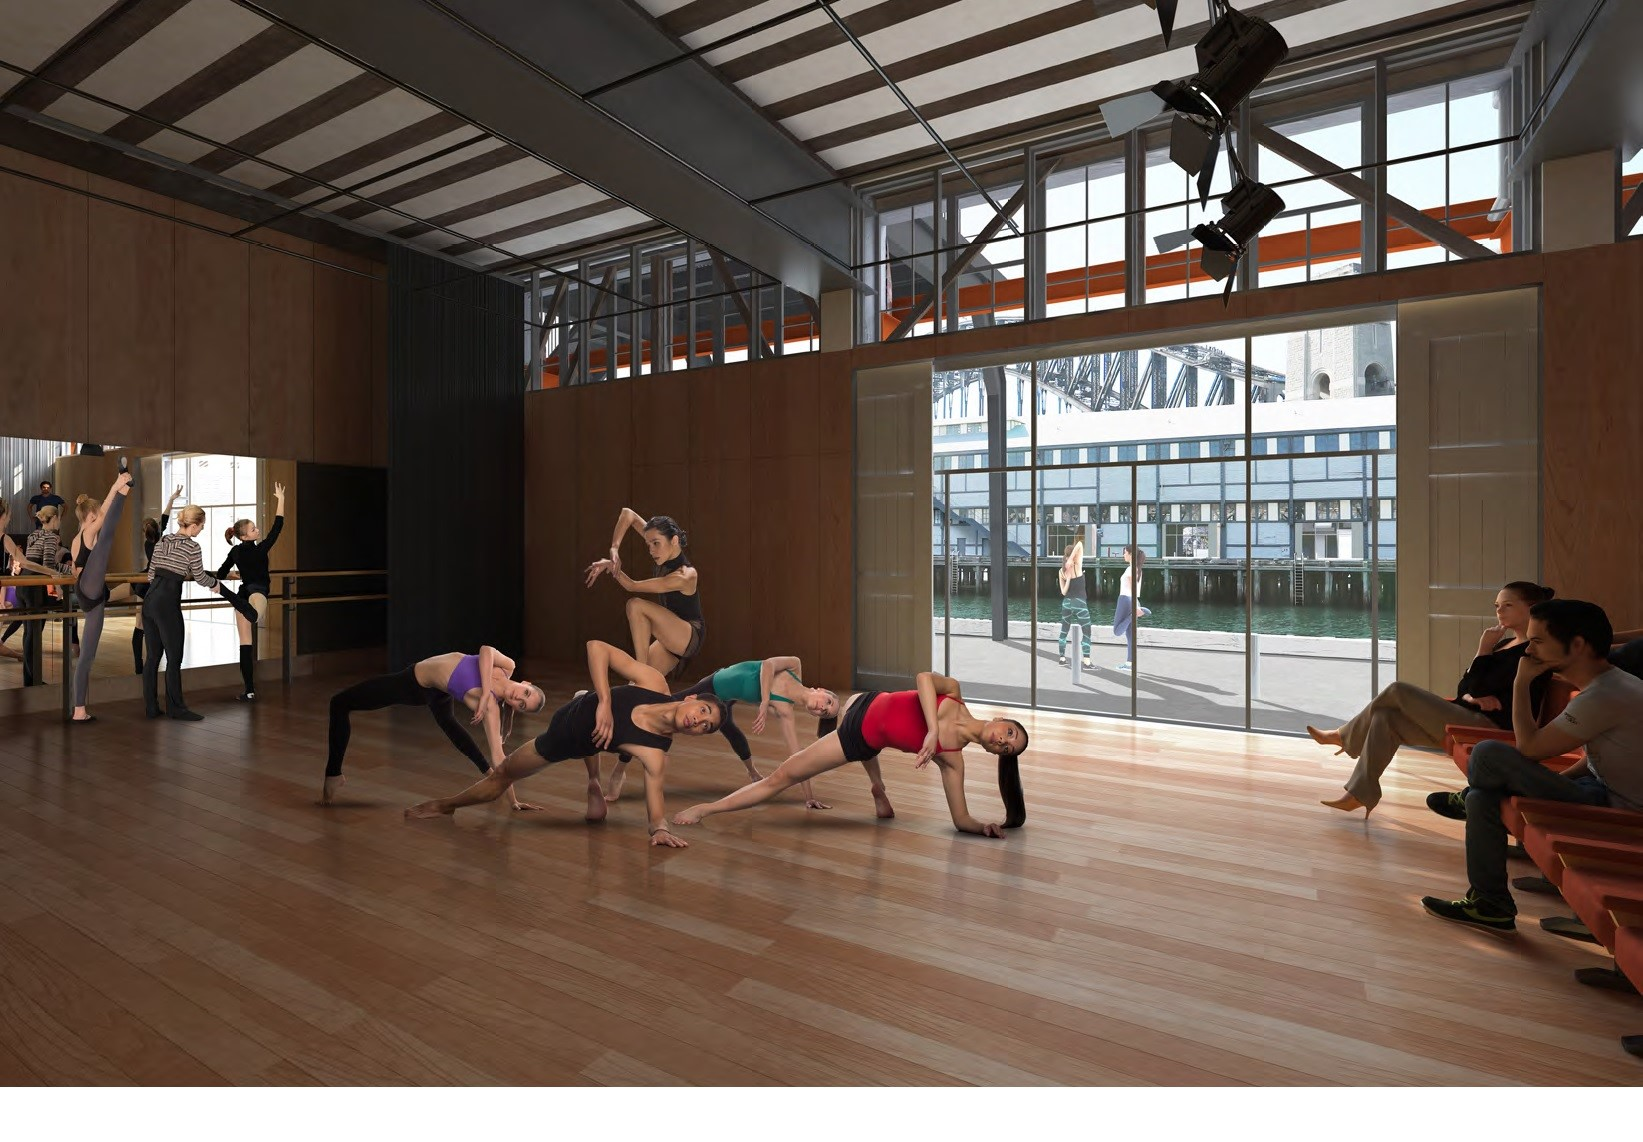 Dance Company studio with dancers practising